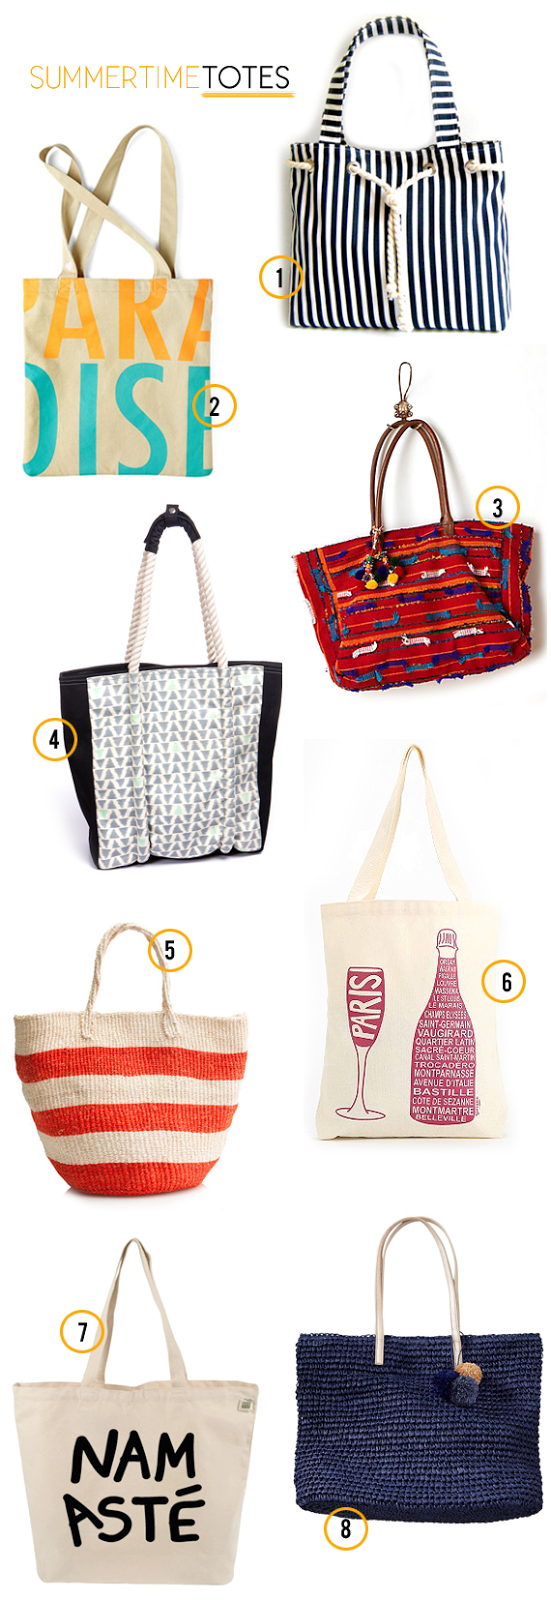 The Best Summertime Totes // Bubby and Bean